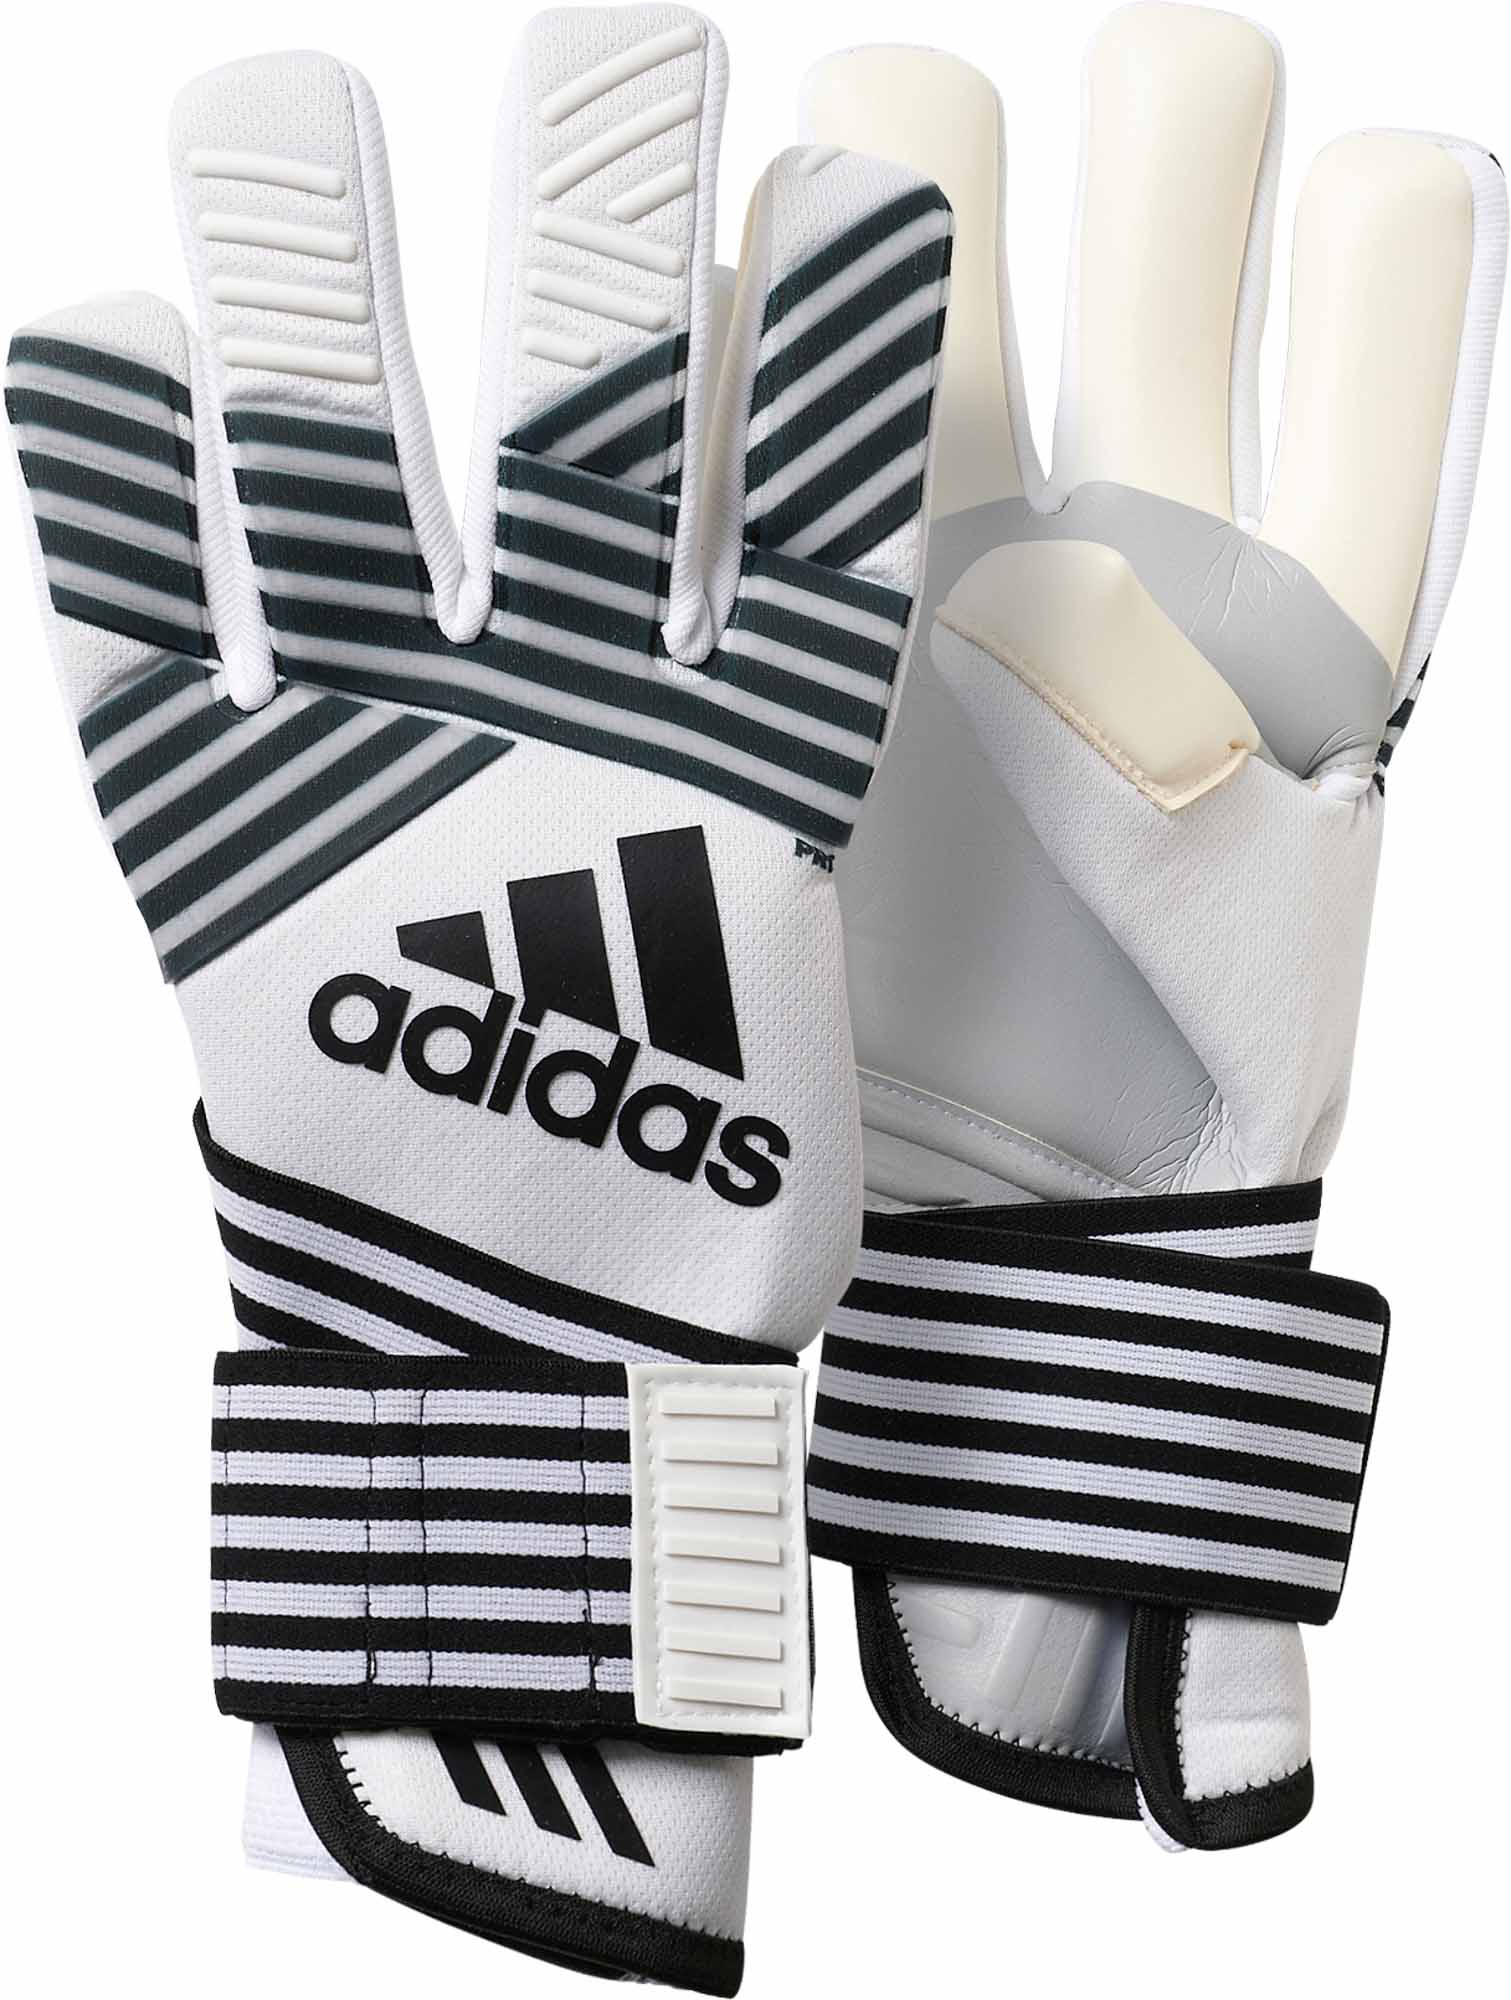 online store a7ac3 64788 adidas ACE Trans Pro Goalkeeper Gloves – Clear Onix/Black